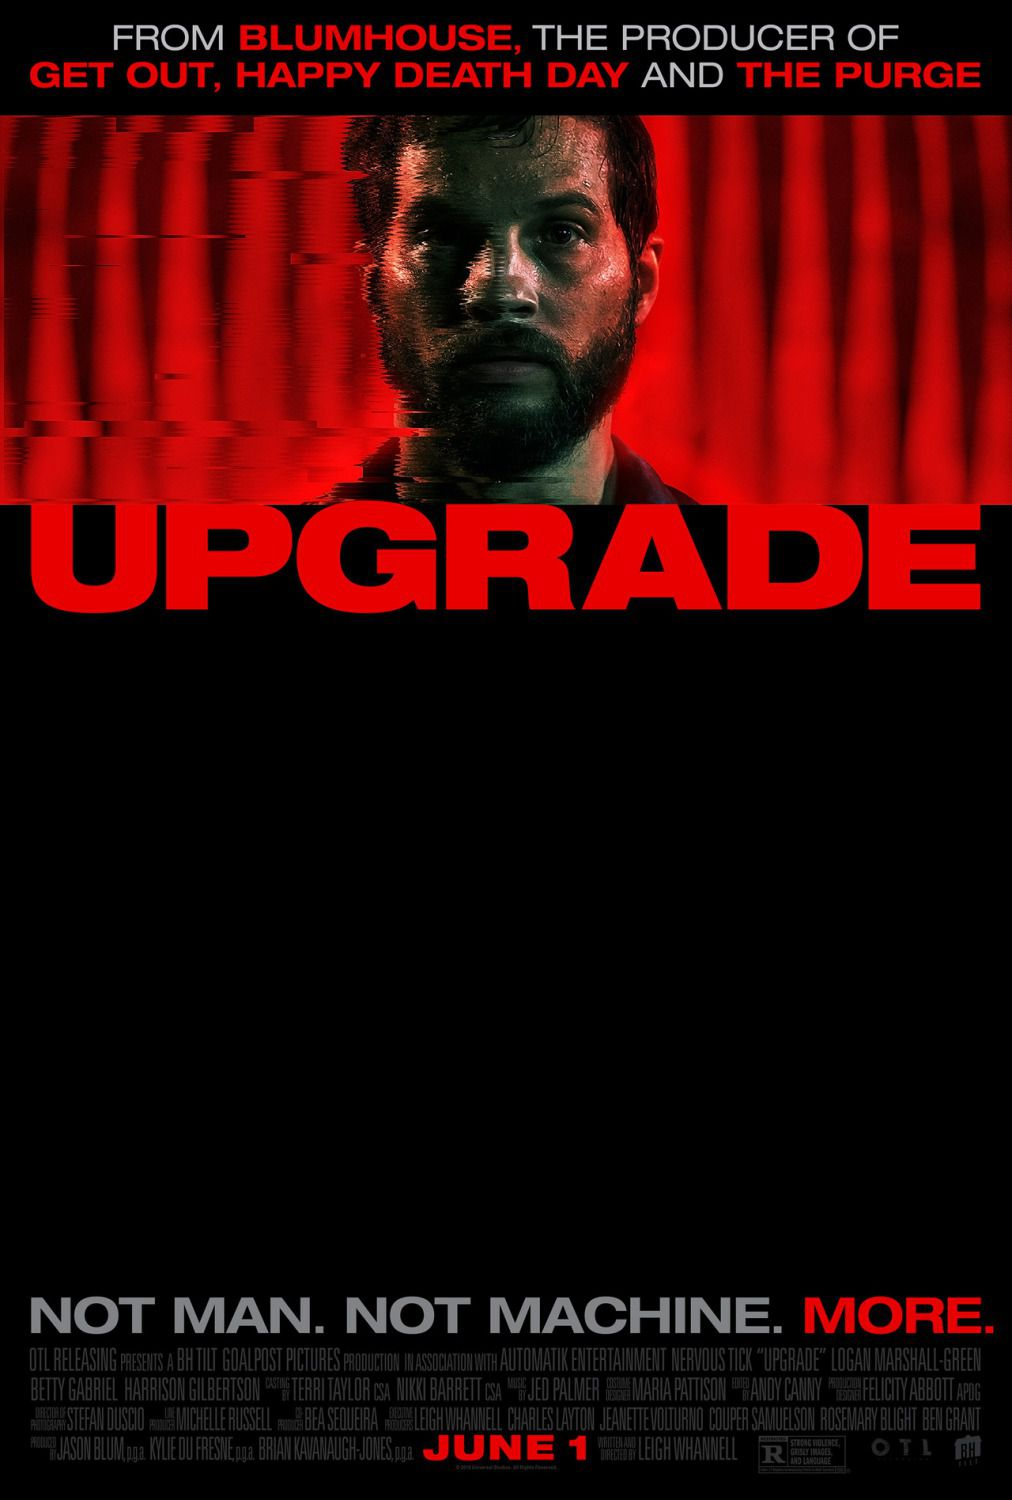 Upgrade - no Man, no Machine, more - film poster